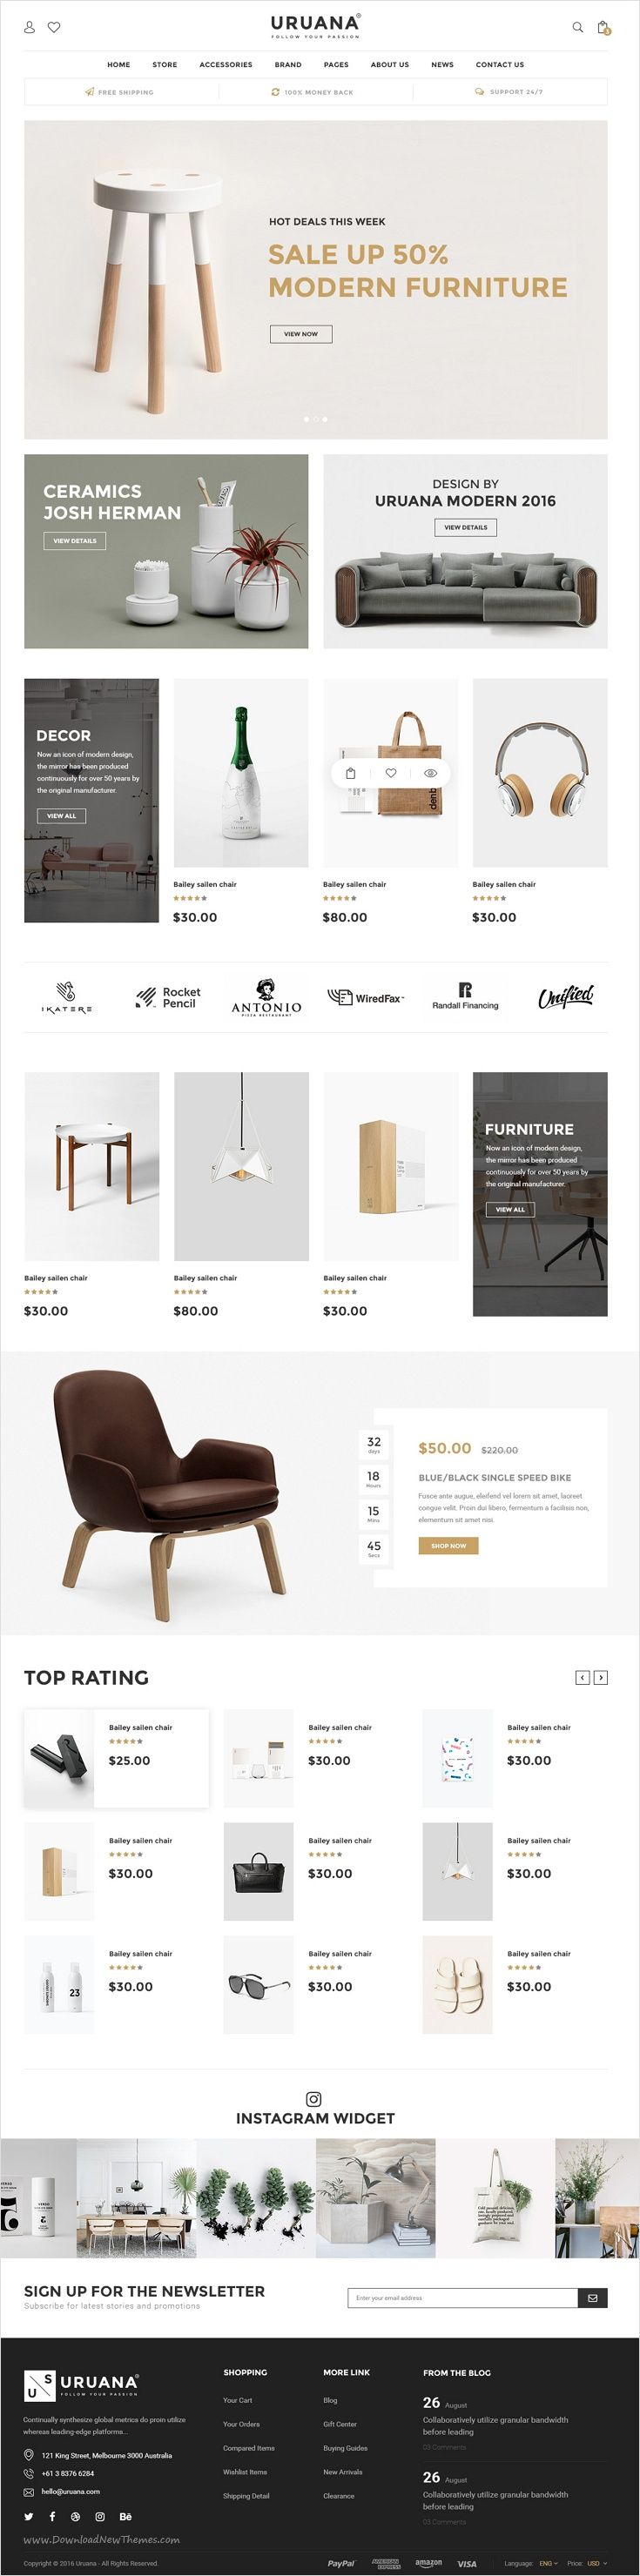 Uruana is uniquly design #PSD #template for stunning #furniture #shop website with 3+ multipurpose homepage layouts and 21 organized PSD pages download now➩ https://themeforest.net/item/uruana-multi-concept-ecommerce-psd-template/17446677?ref=Datasata